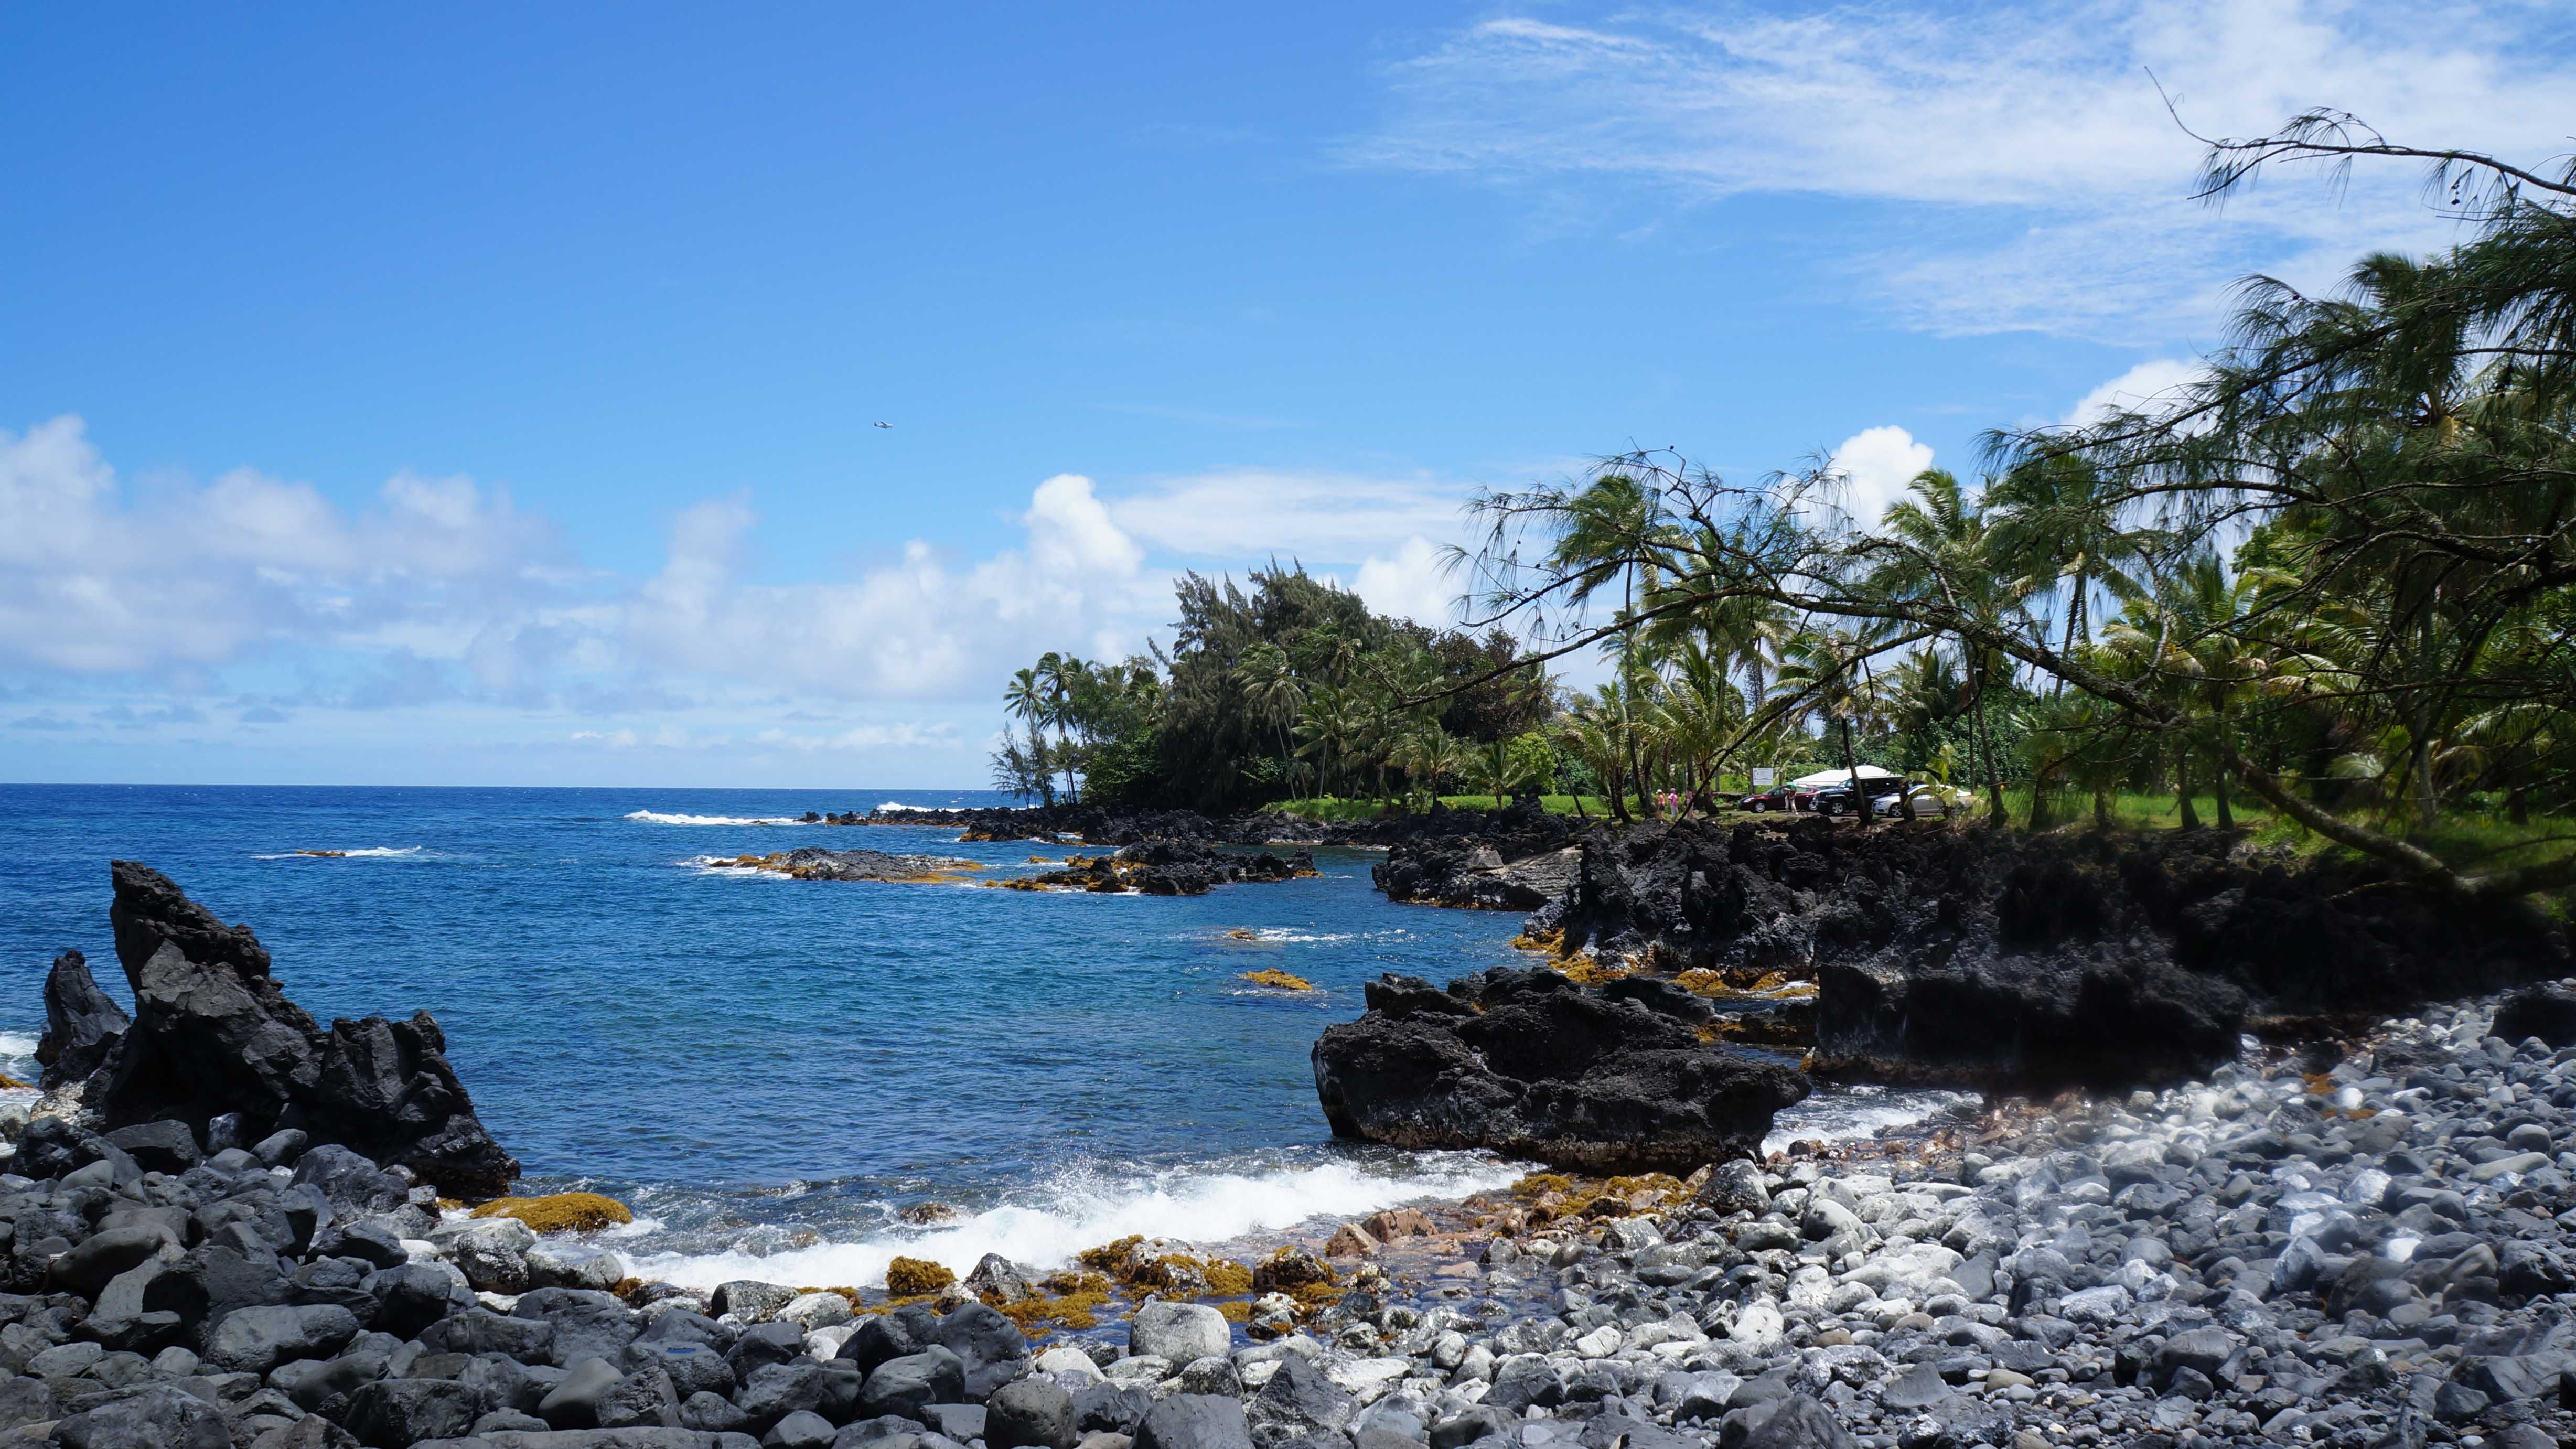 A rocky beach in Hawaii with palm trees and blue skies